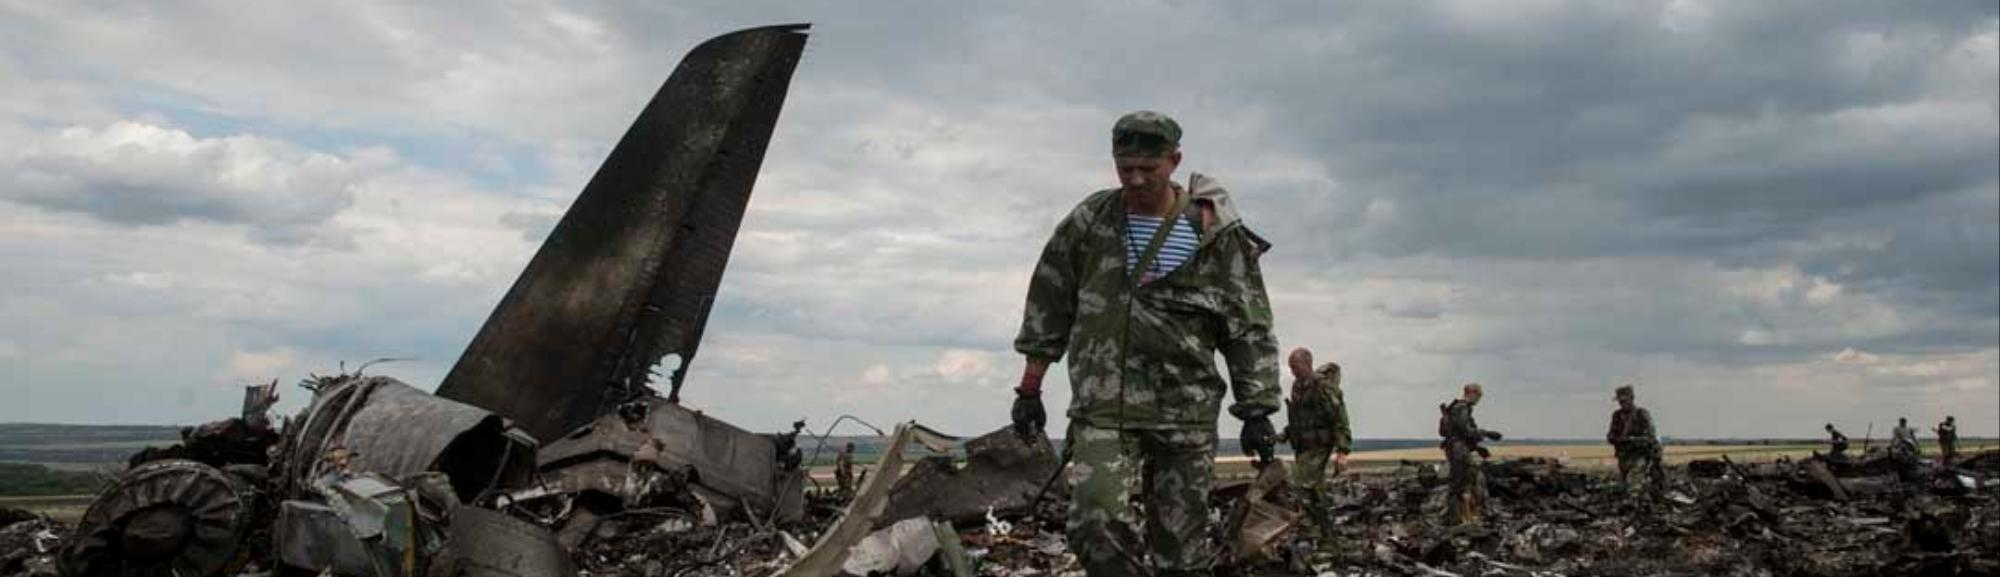 Ukraine President Promises an 'Adequate Response' After Rebels Shoot Down Military Plane